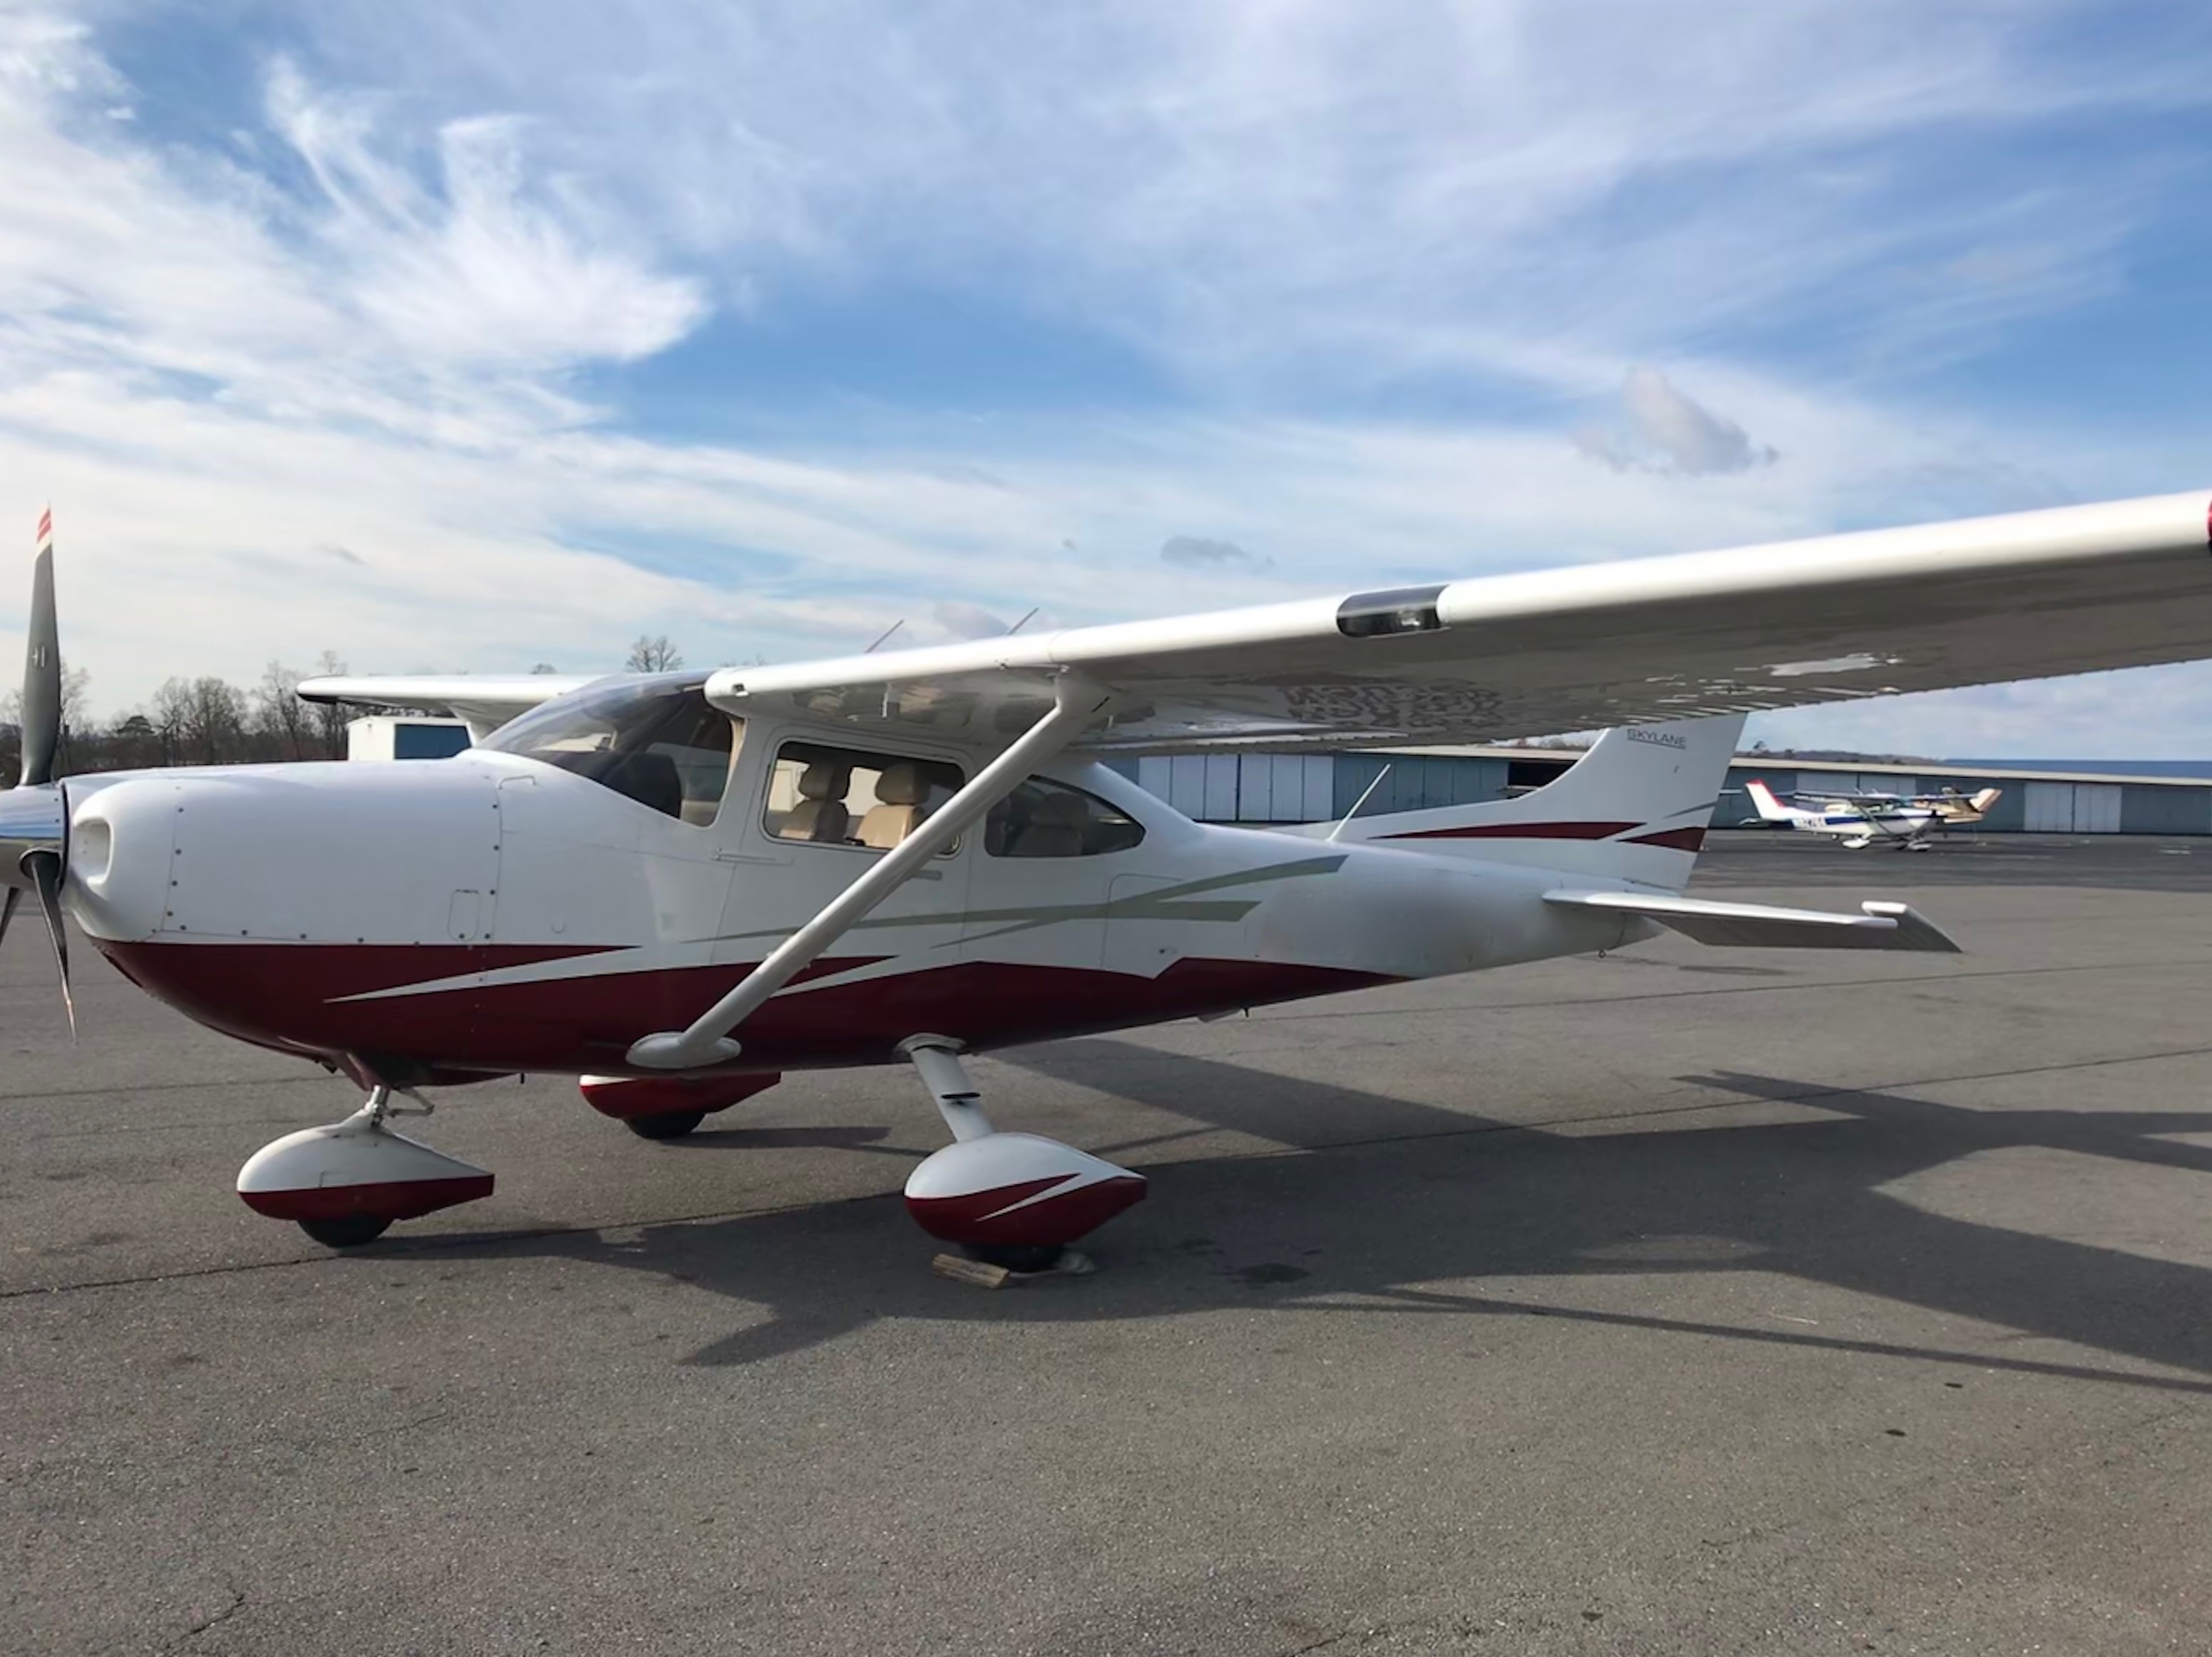 Podcast Episodes Page 3 Airplane Owner Maintenance Aircraft Wiring Harness Clamps The Induction Coupling On This Engine Needed A Little Tightening Its Always Good Idea To Check These During Annual Inspection